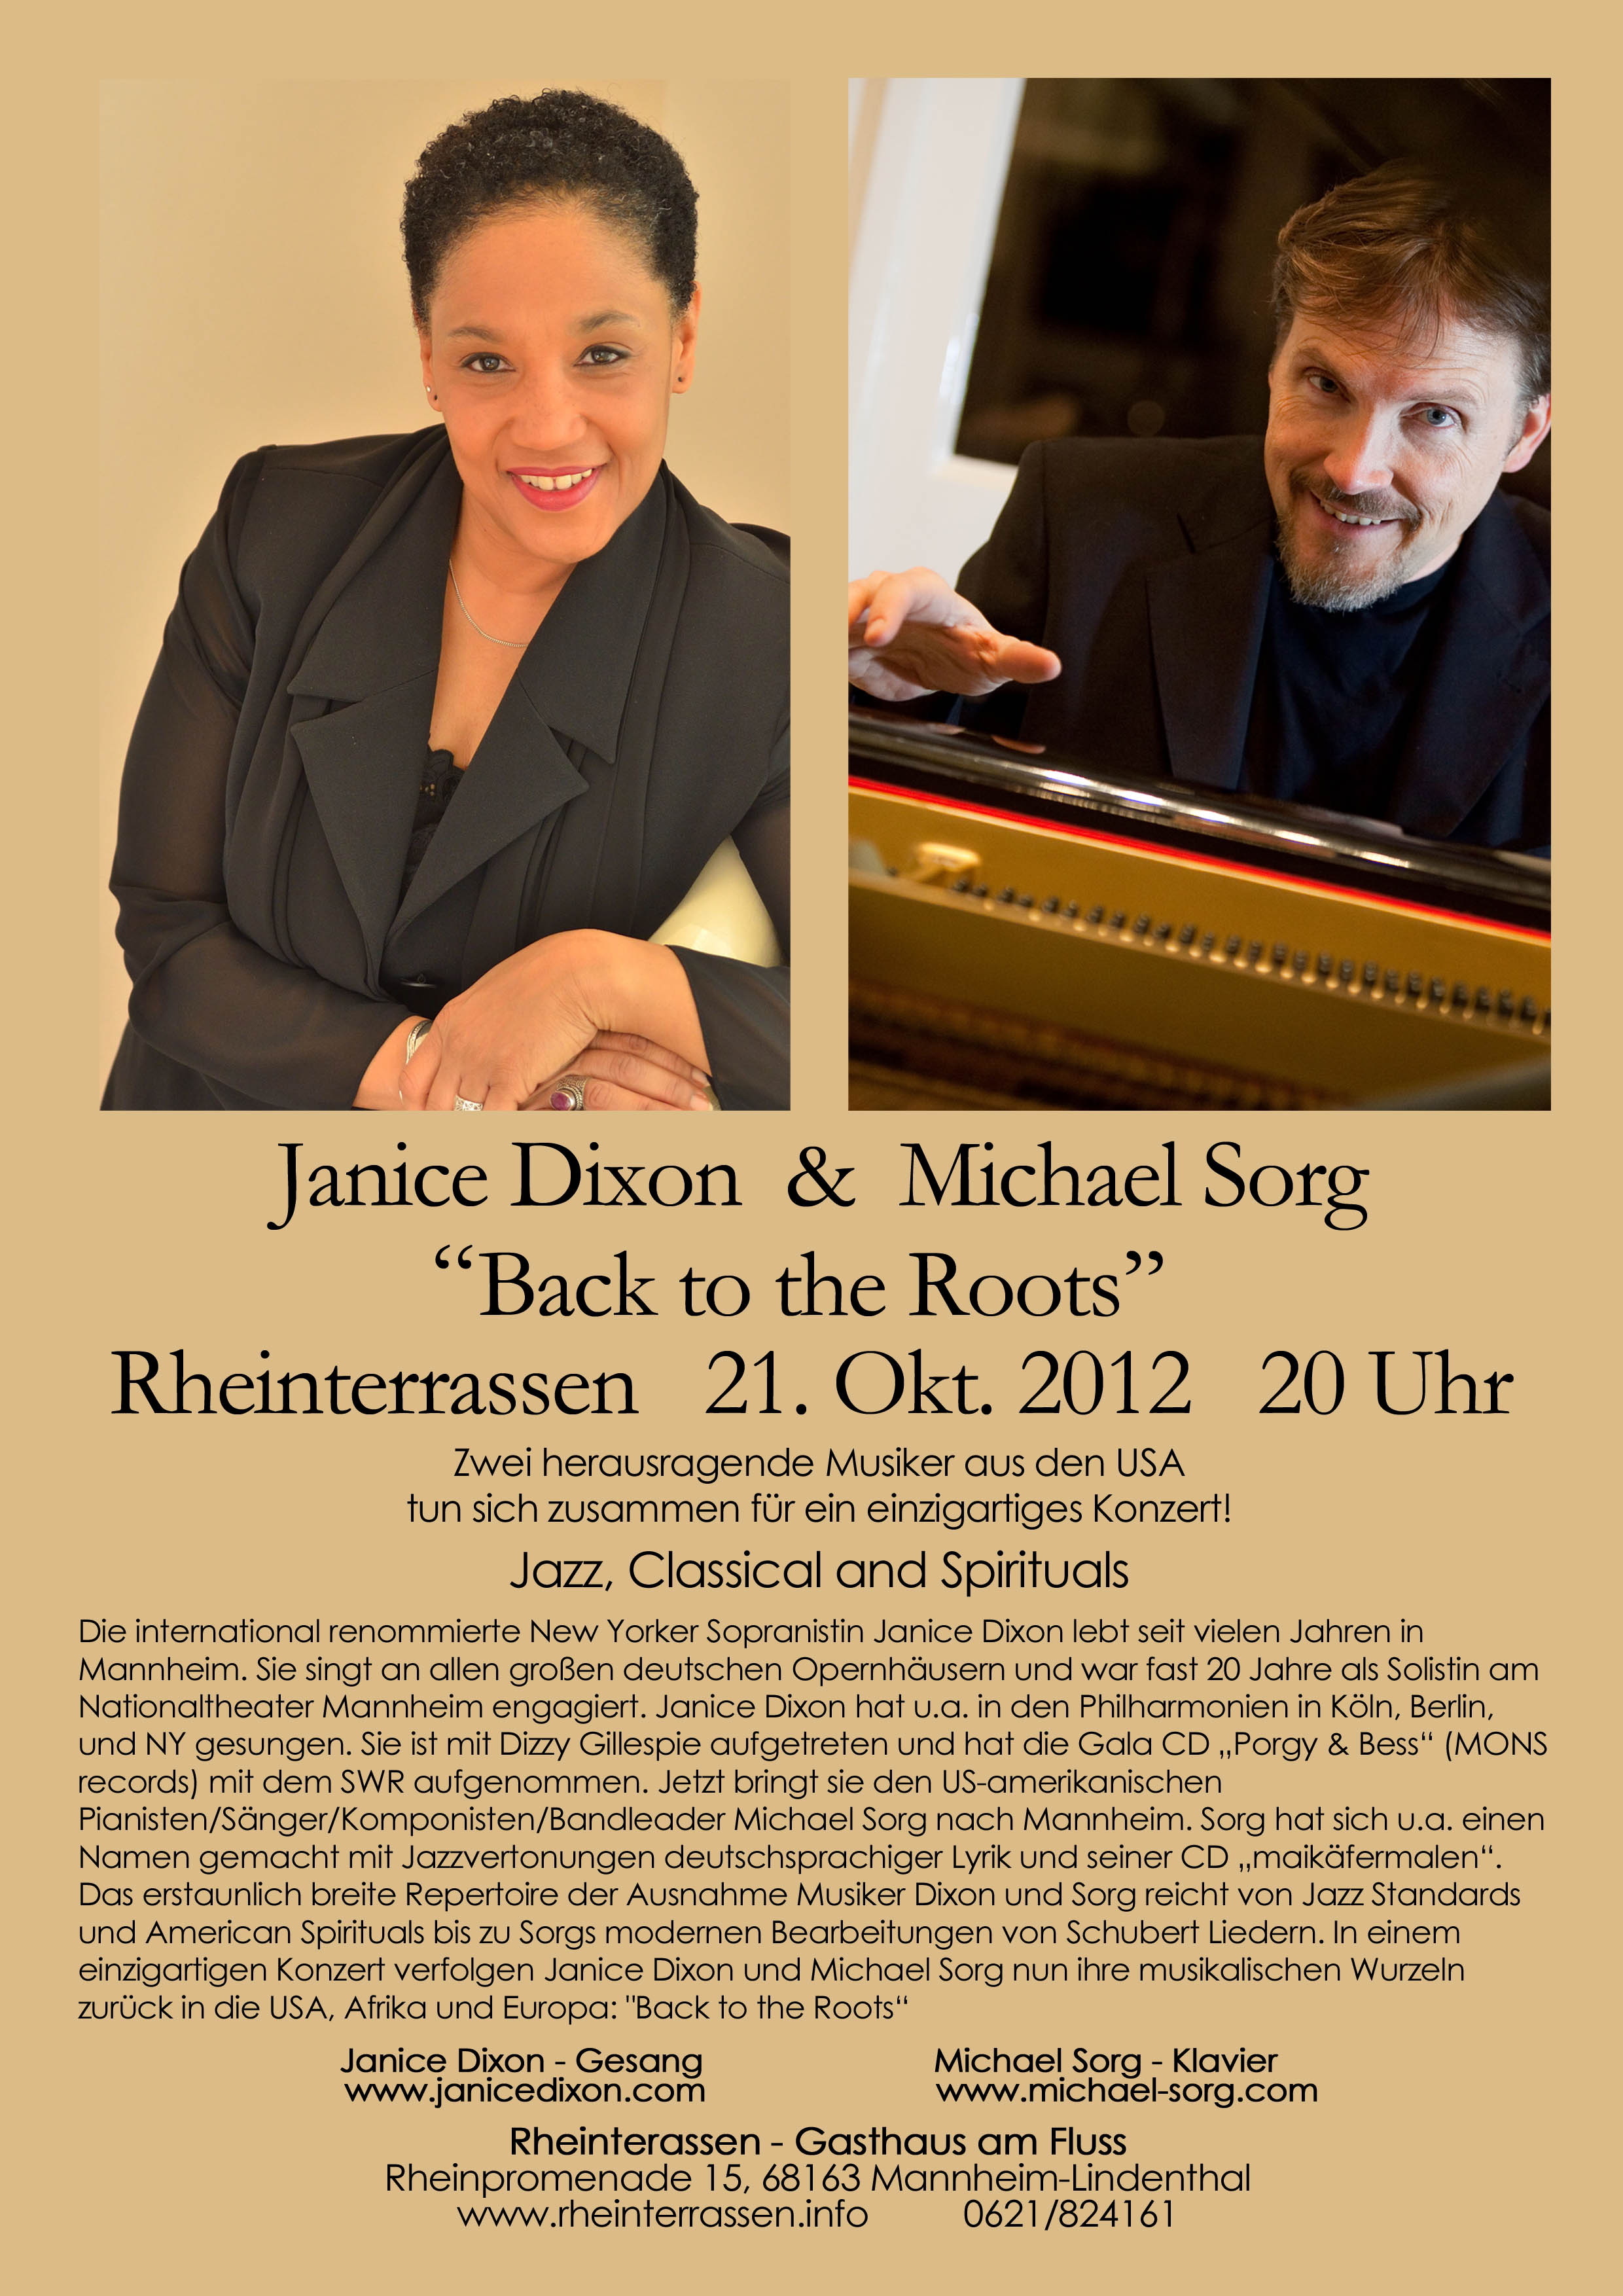 Back to the Roots - Janice Dixon and Michael Sorg